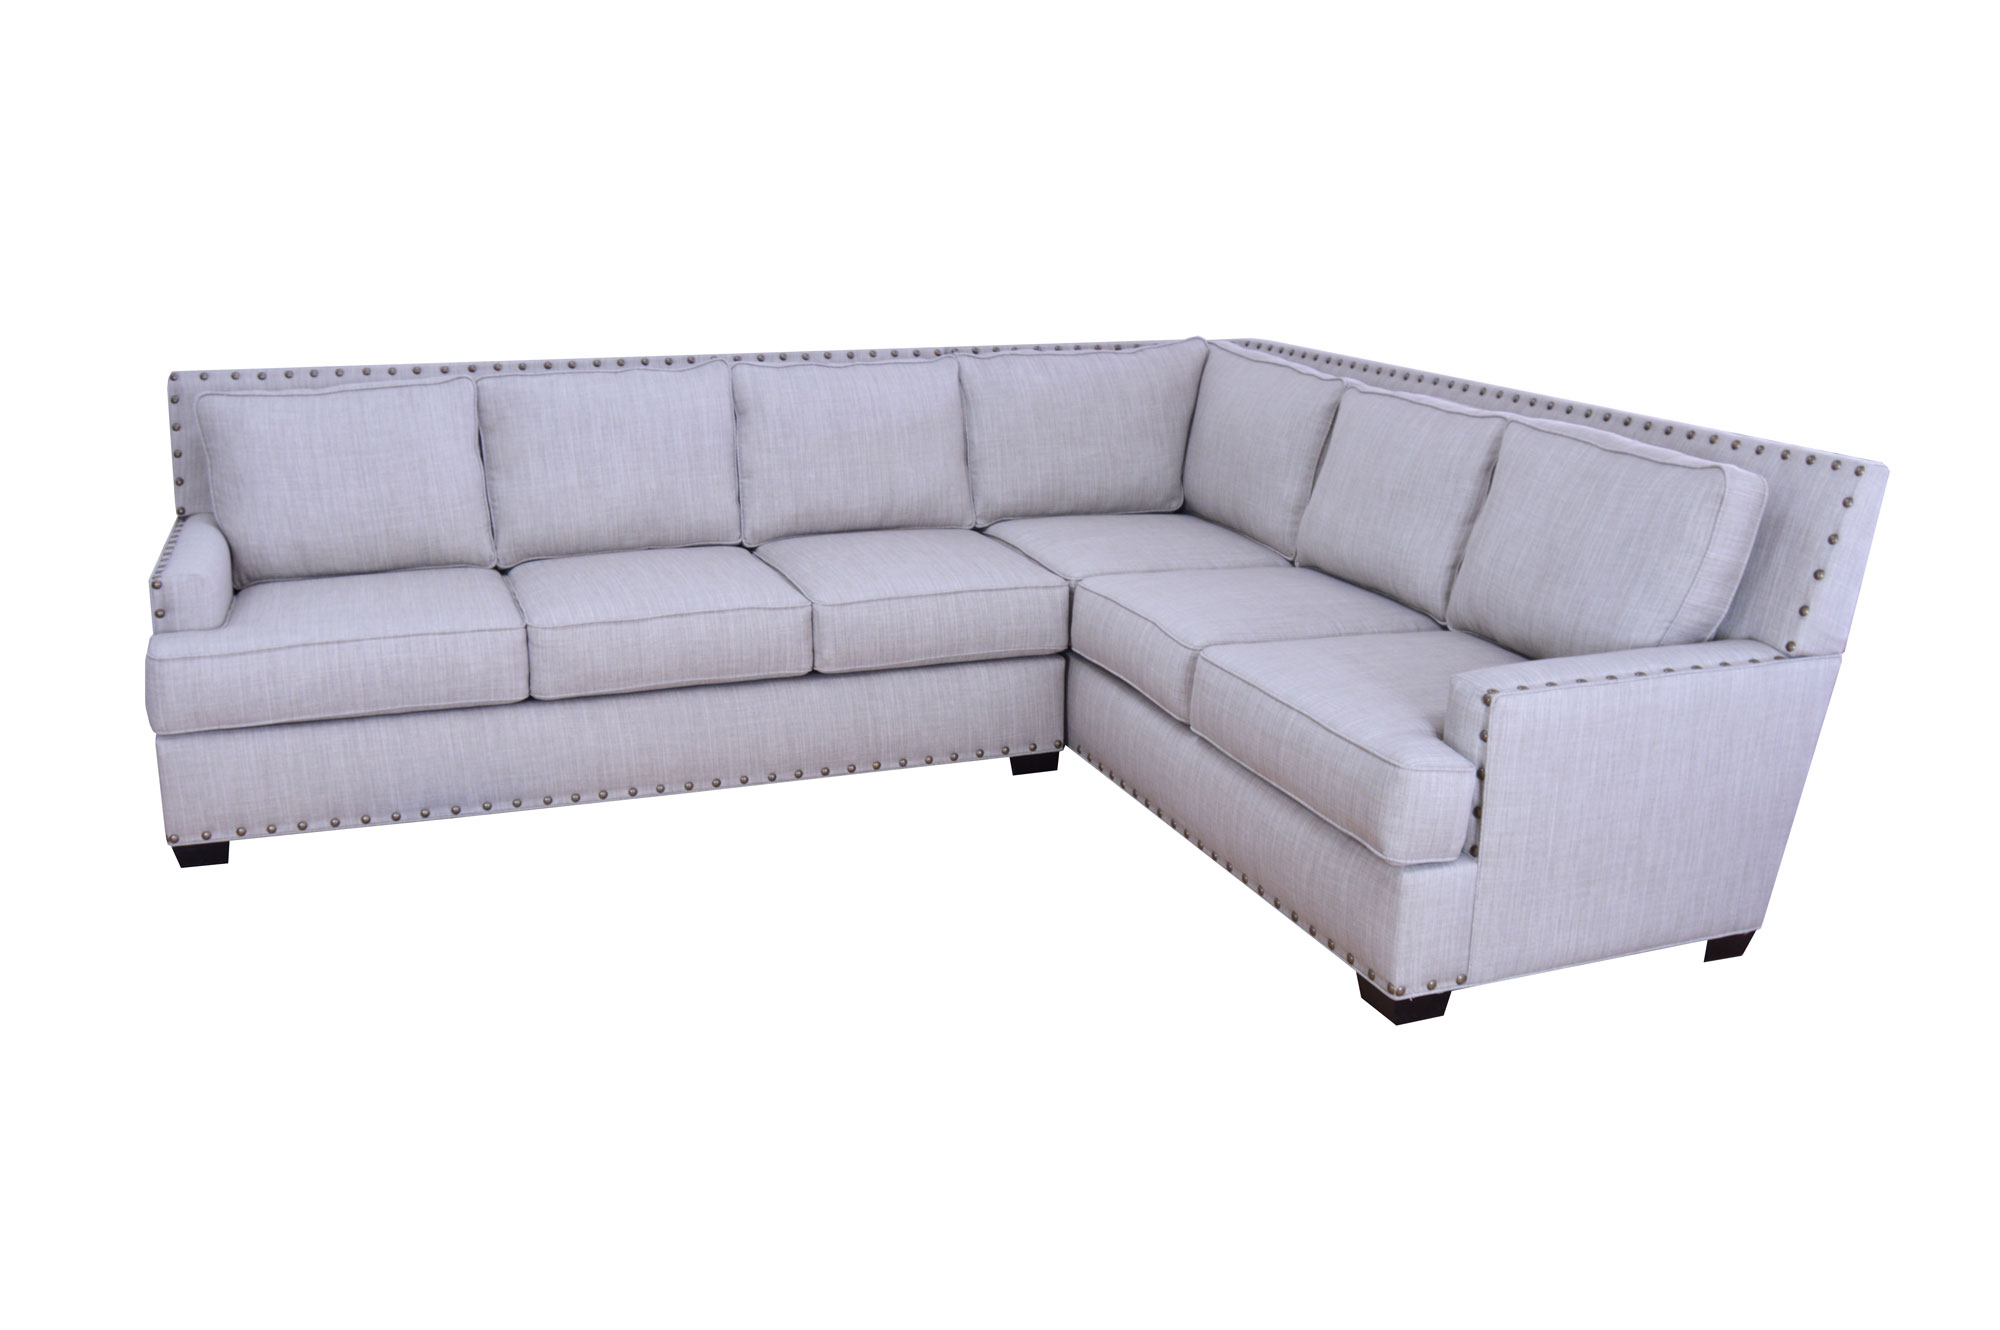 Sofas 4 Less Antioch Beverly Hills - Custom Sofas 4 Less